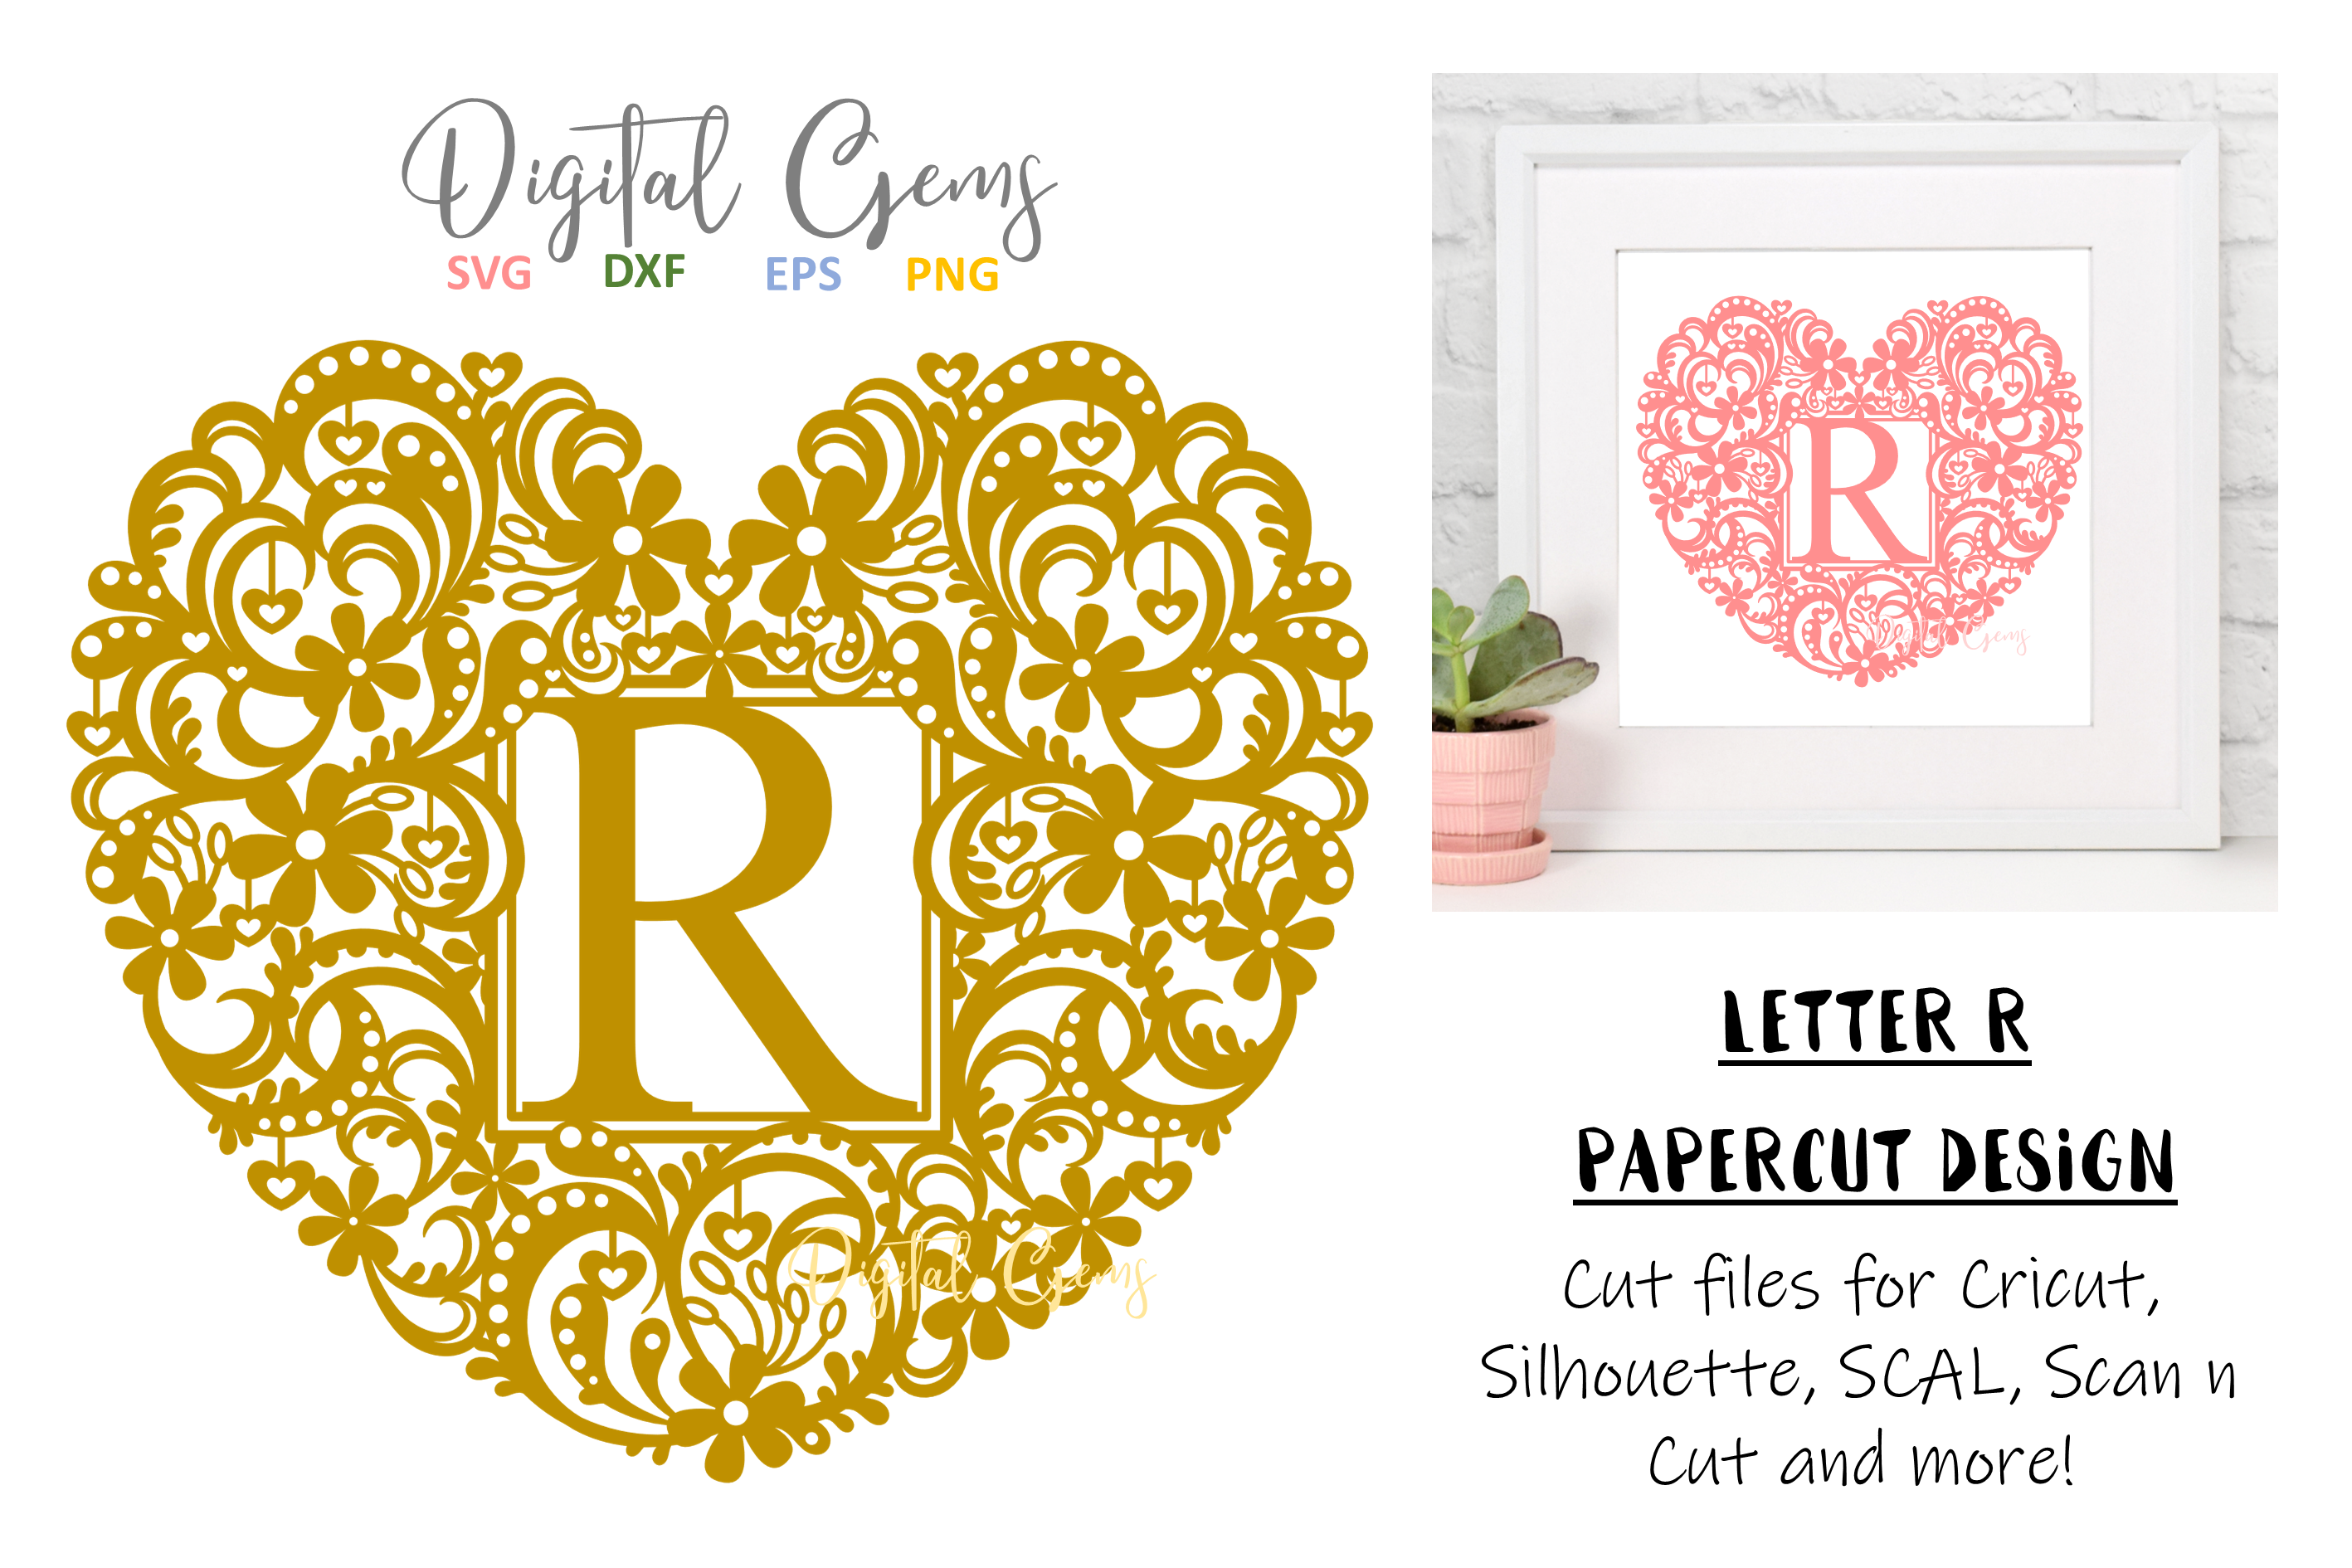 Letter R paper cut design. SVG / DXF / EPS / PNG files example image 1